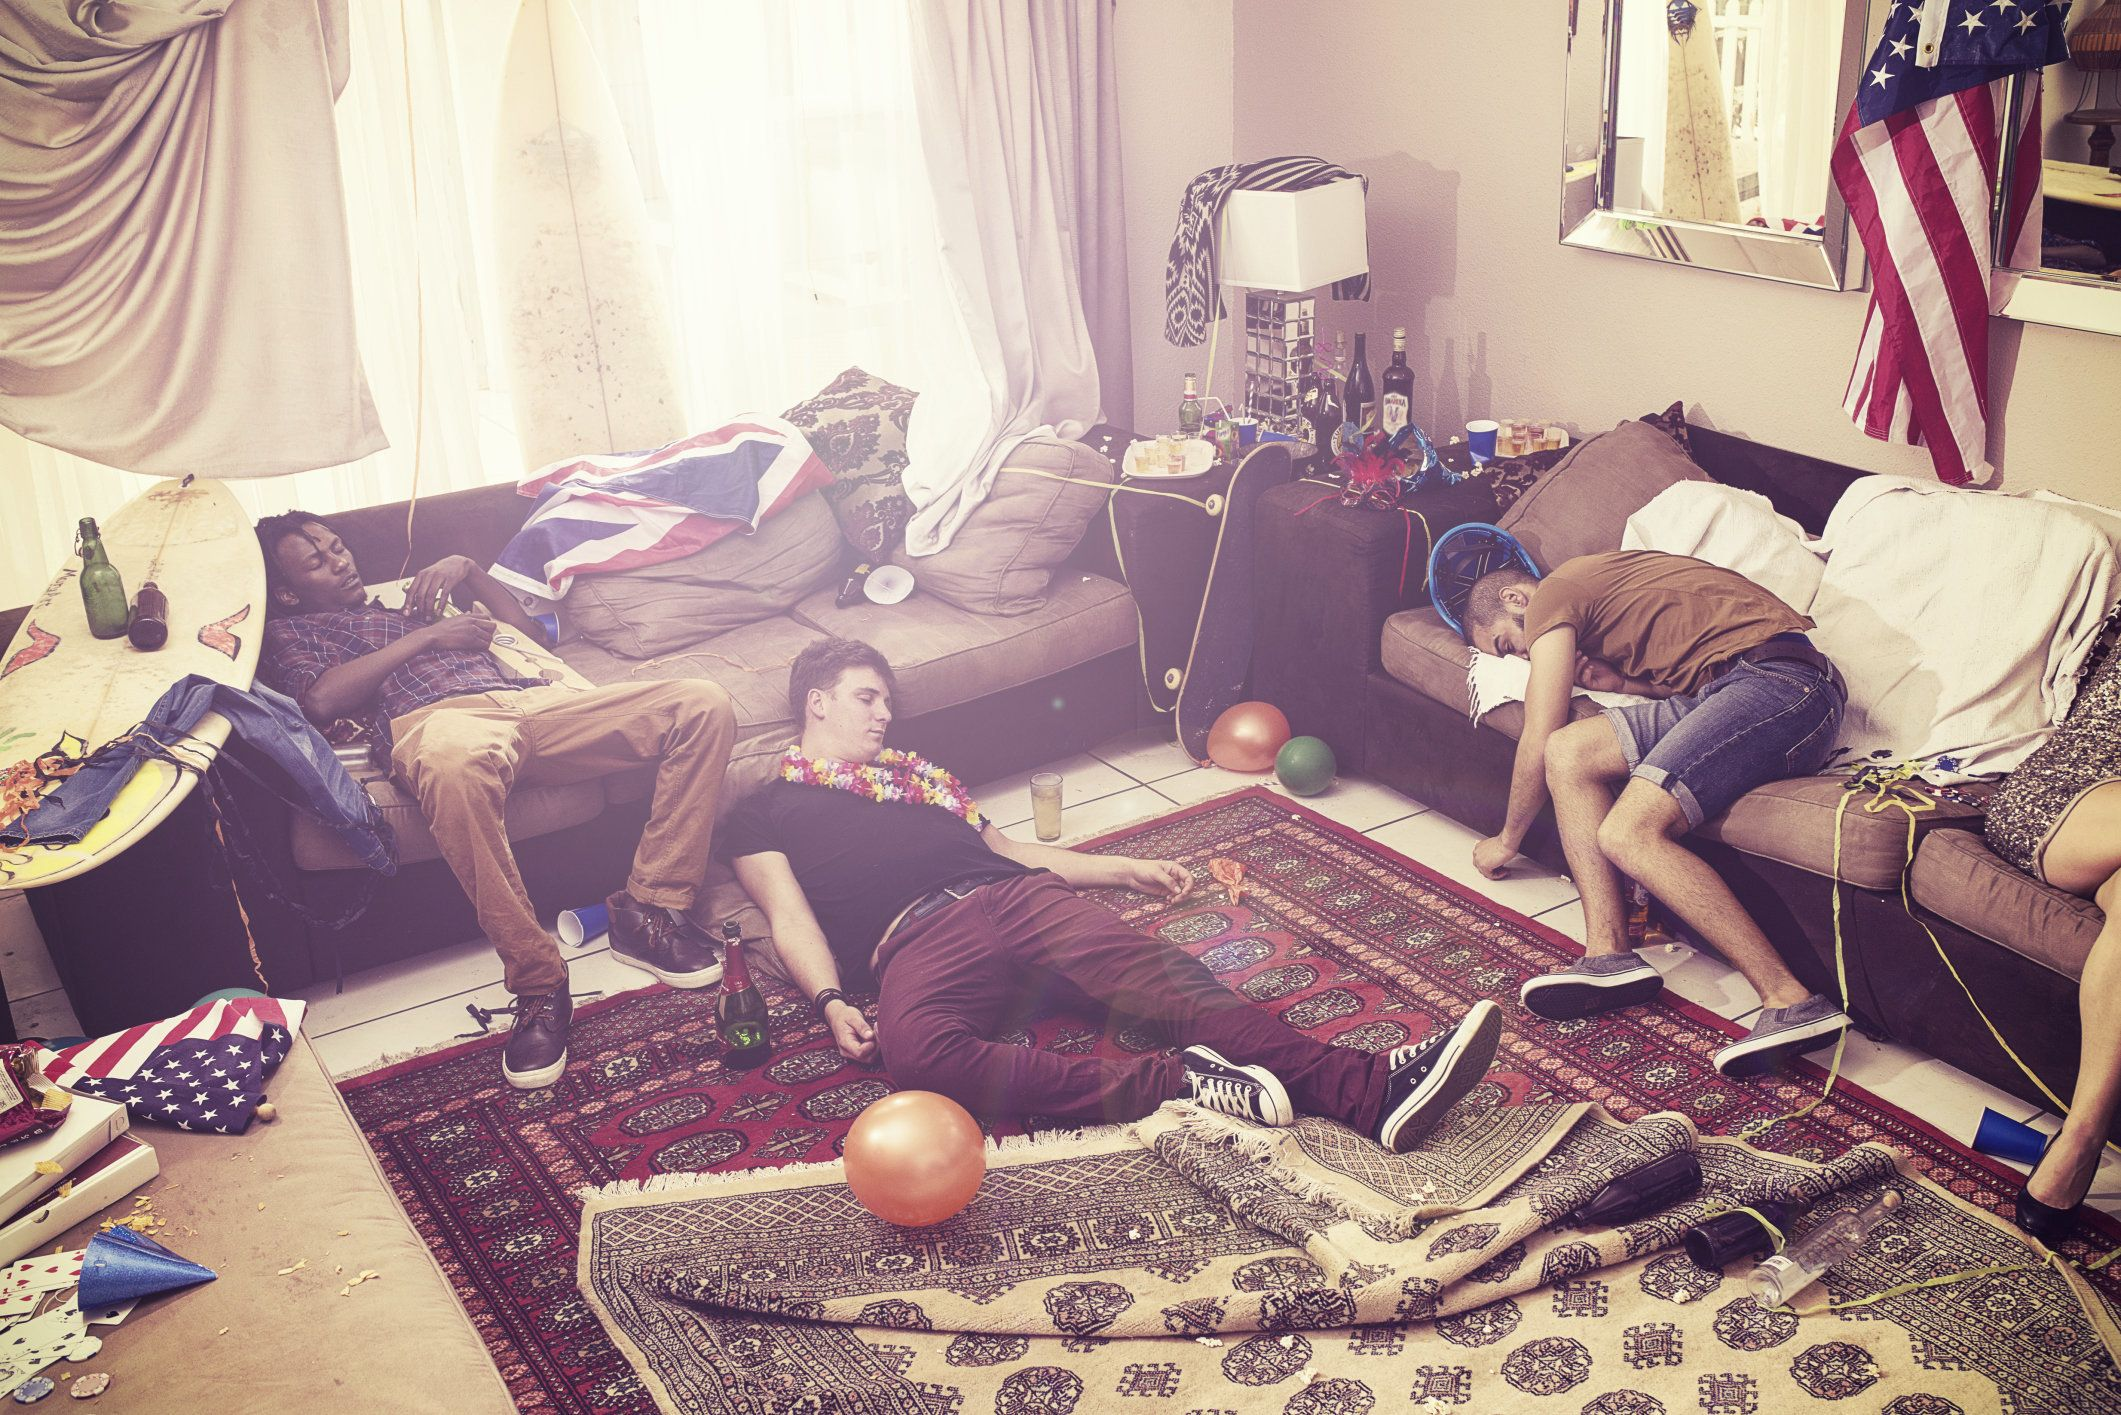 Three guys passed out after a party